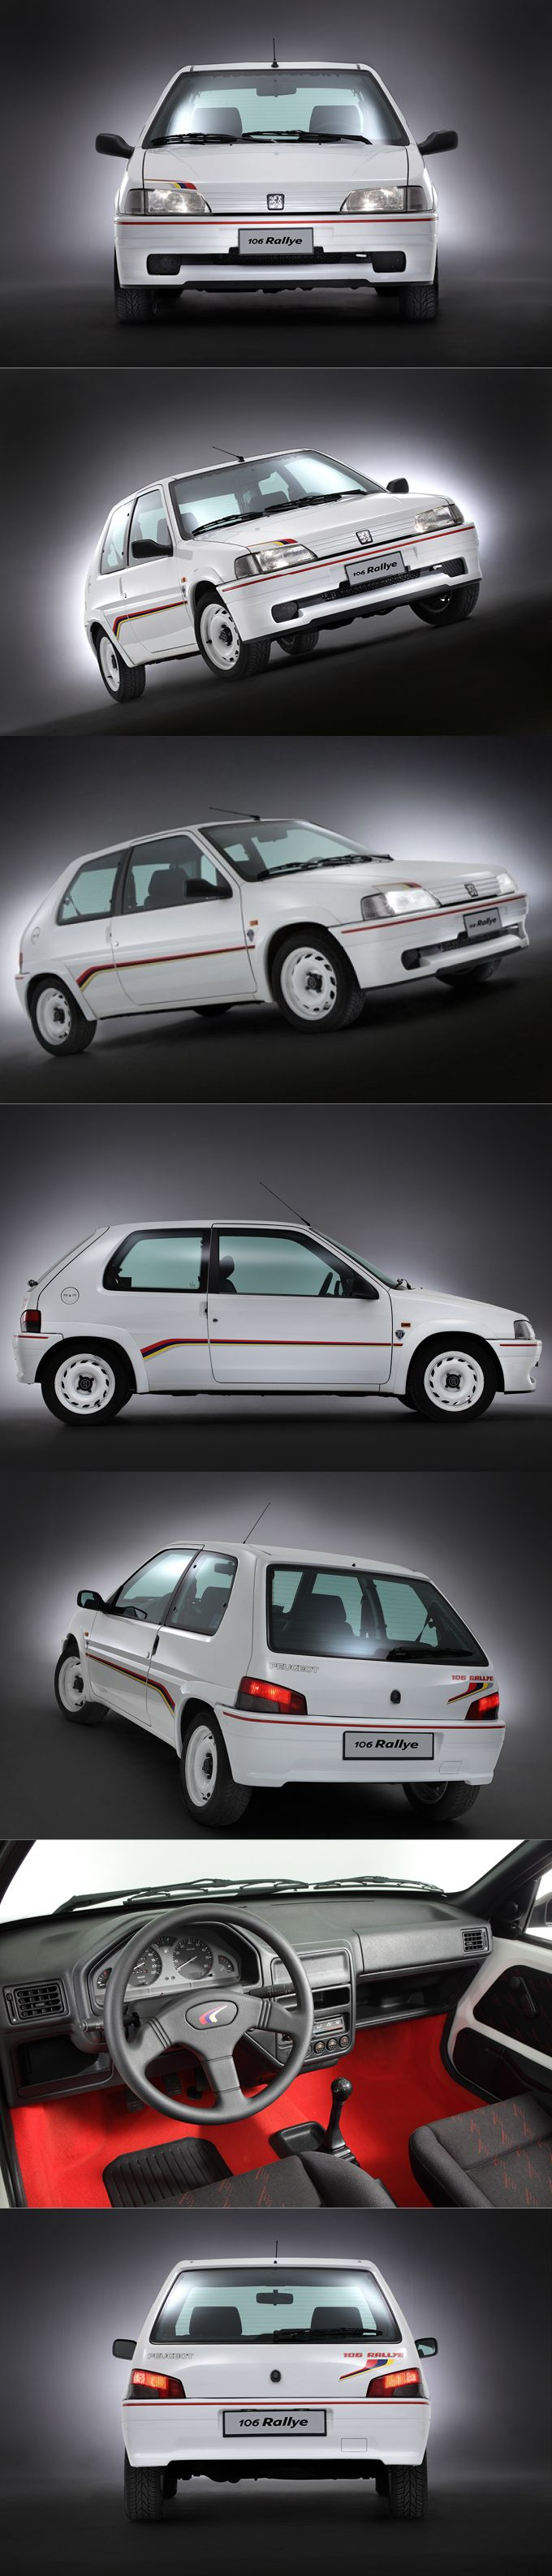 1993 Peugeot 10 Rallye / 1.3l 100hp L4 / 825kg / commemorate 106 Collect Cars followers / France / yellow red white / 17-355